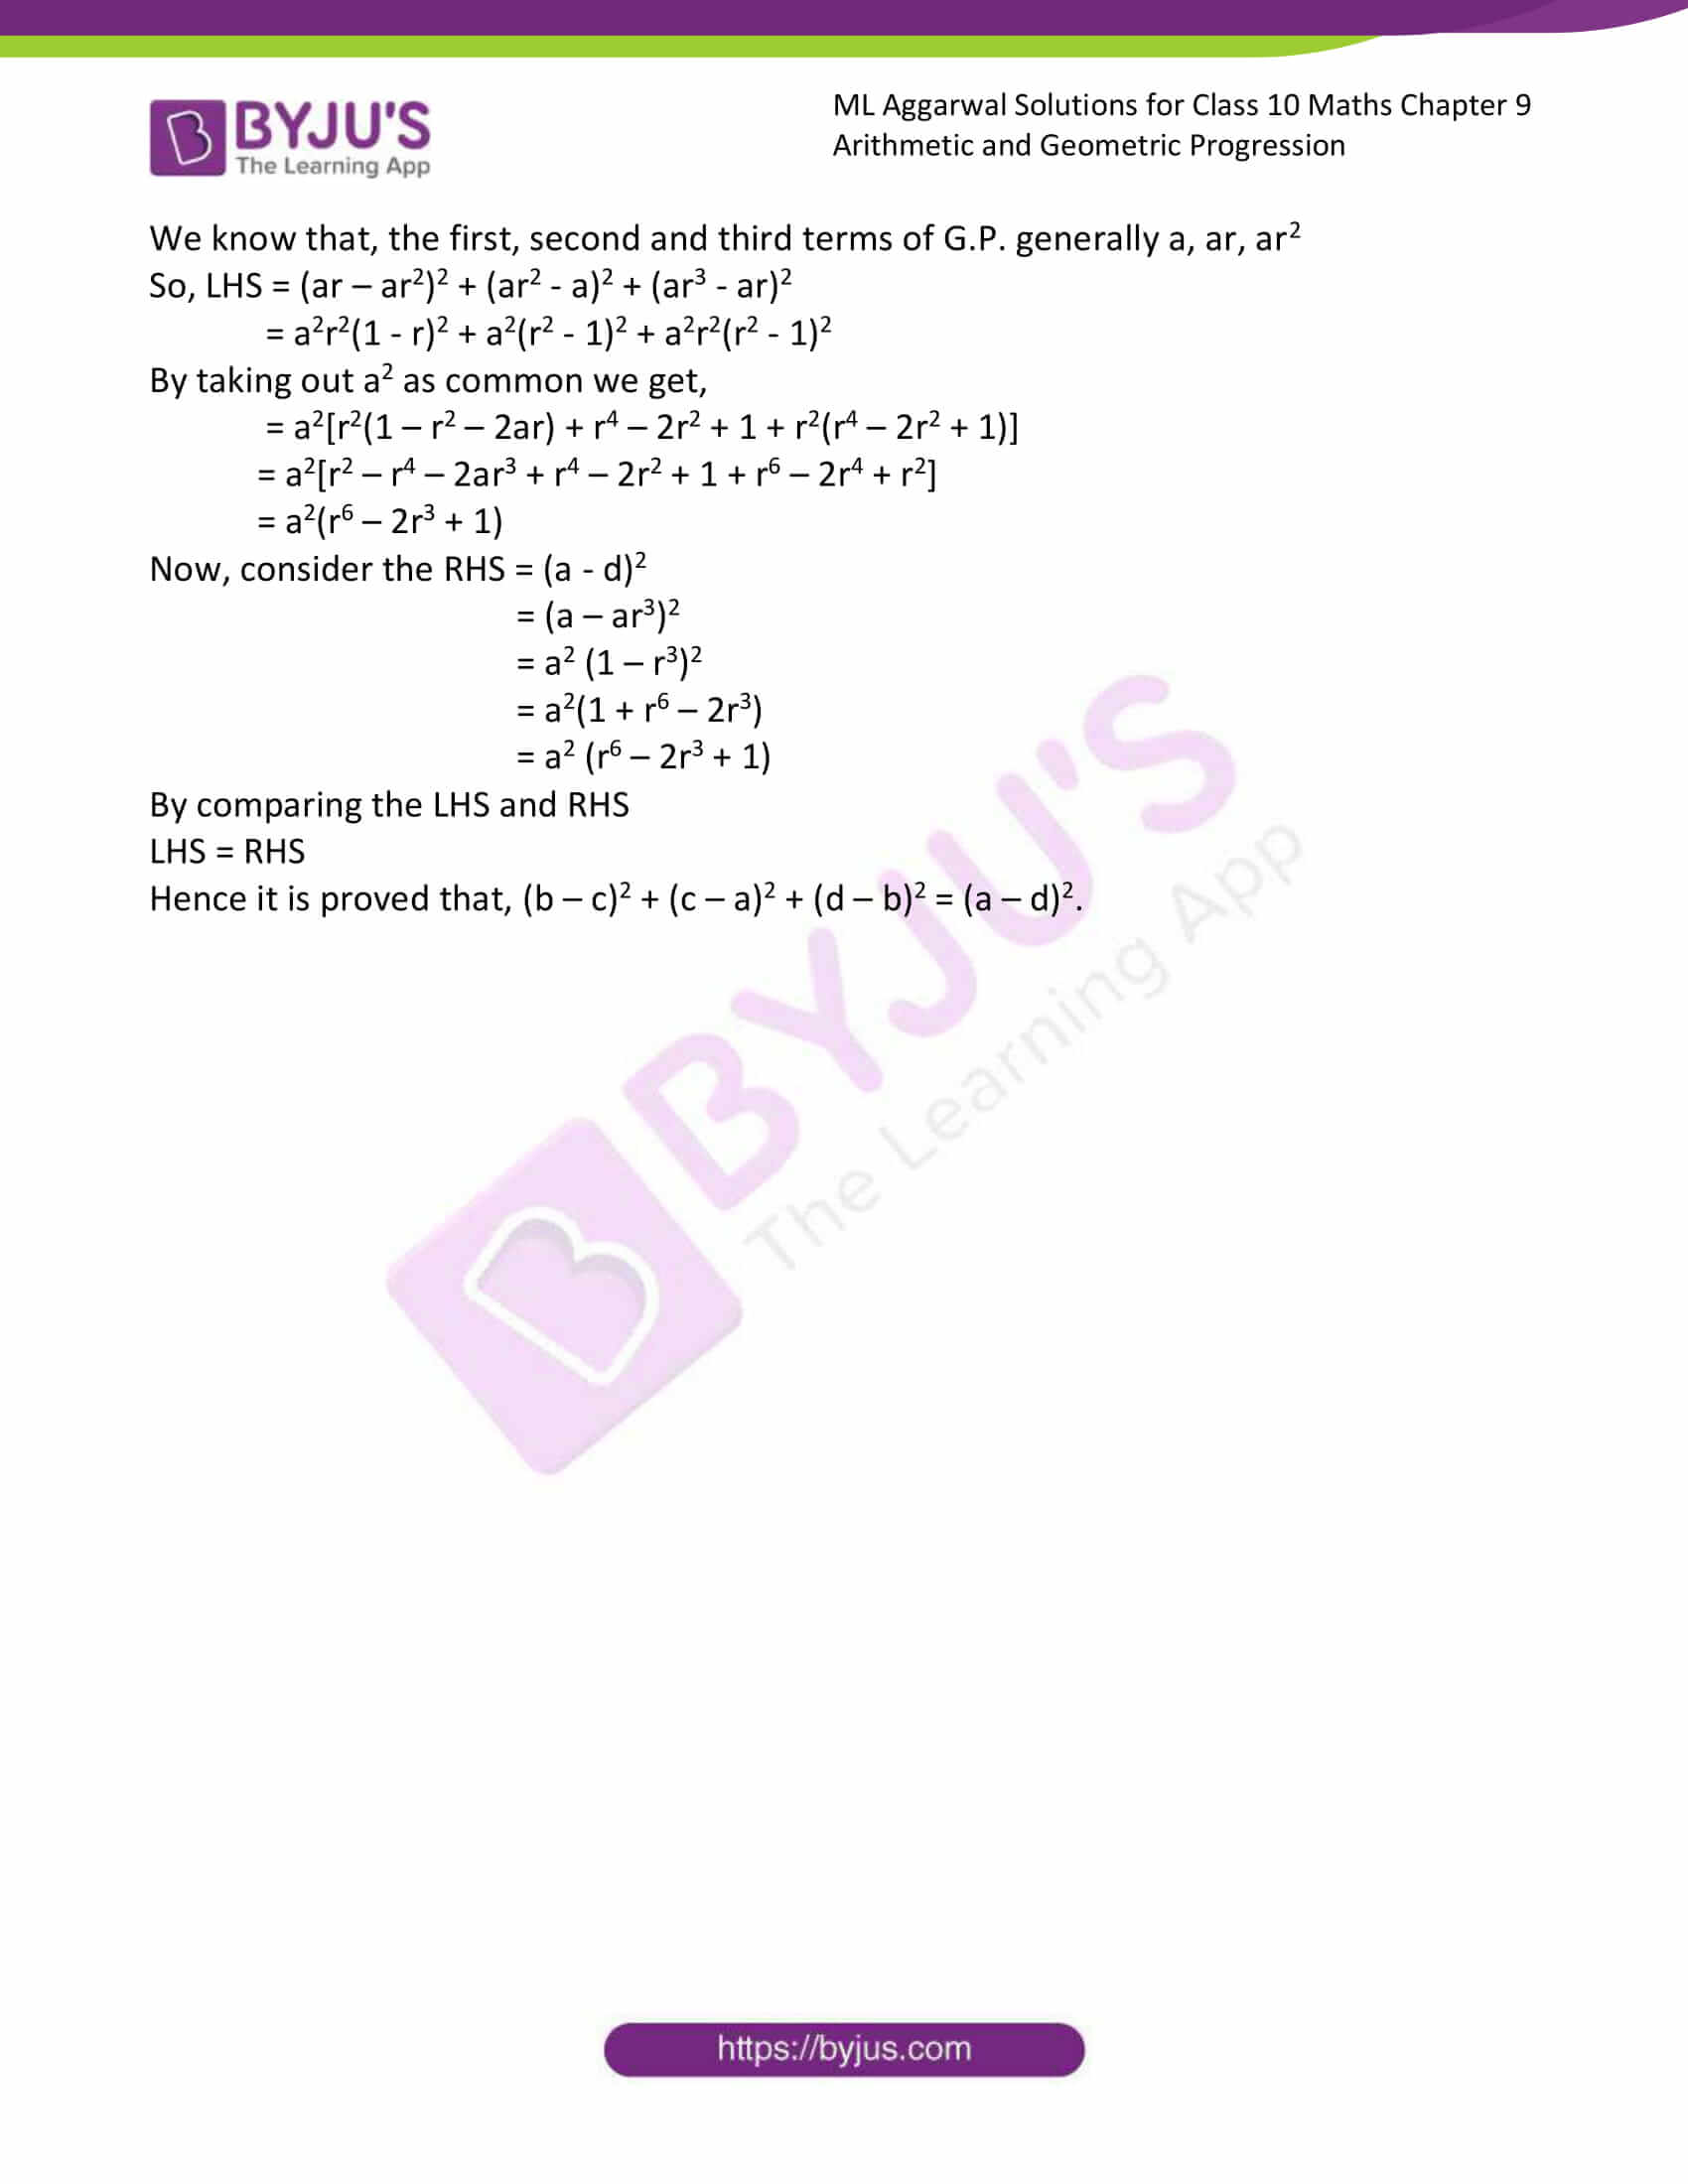 ml aggarwal solutions class 10 maths chapter 9 63